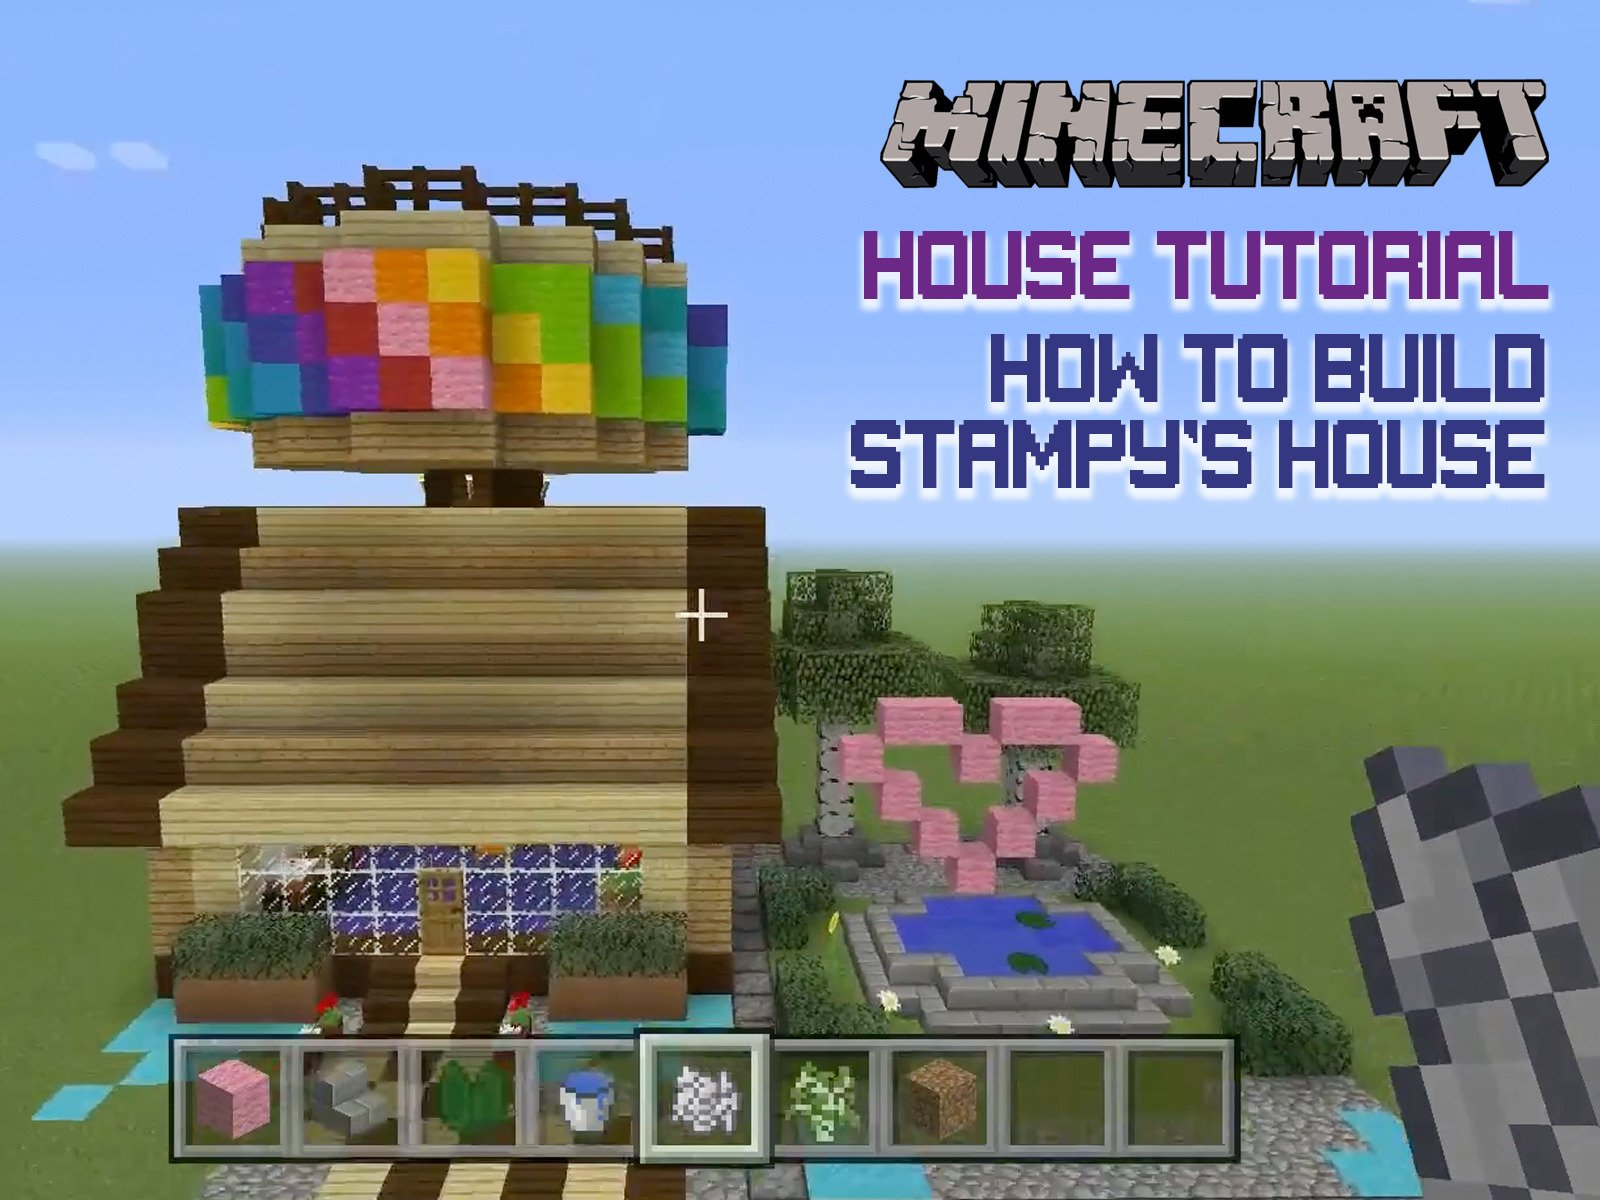 Amazon minecraft house tutorial how to build stampys house amazon minecraft house tutorial how to build stampys house dad plays games baditri Image collections